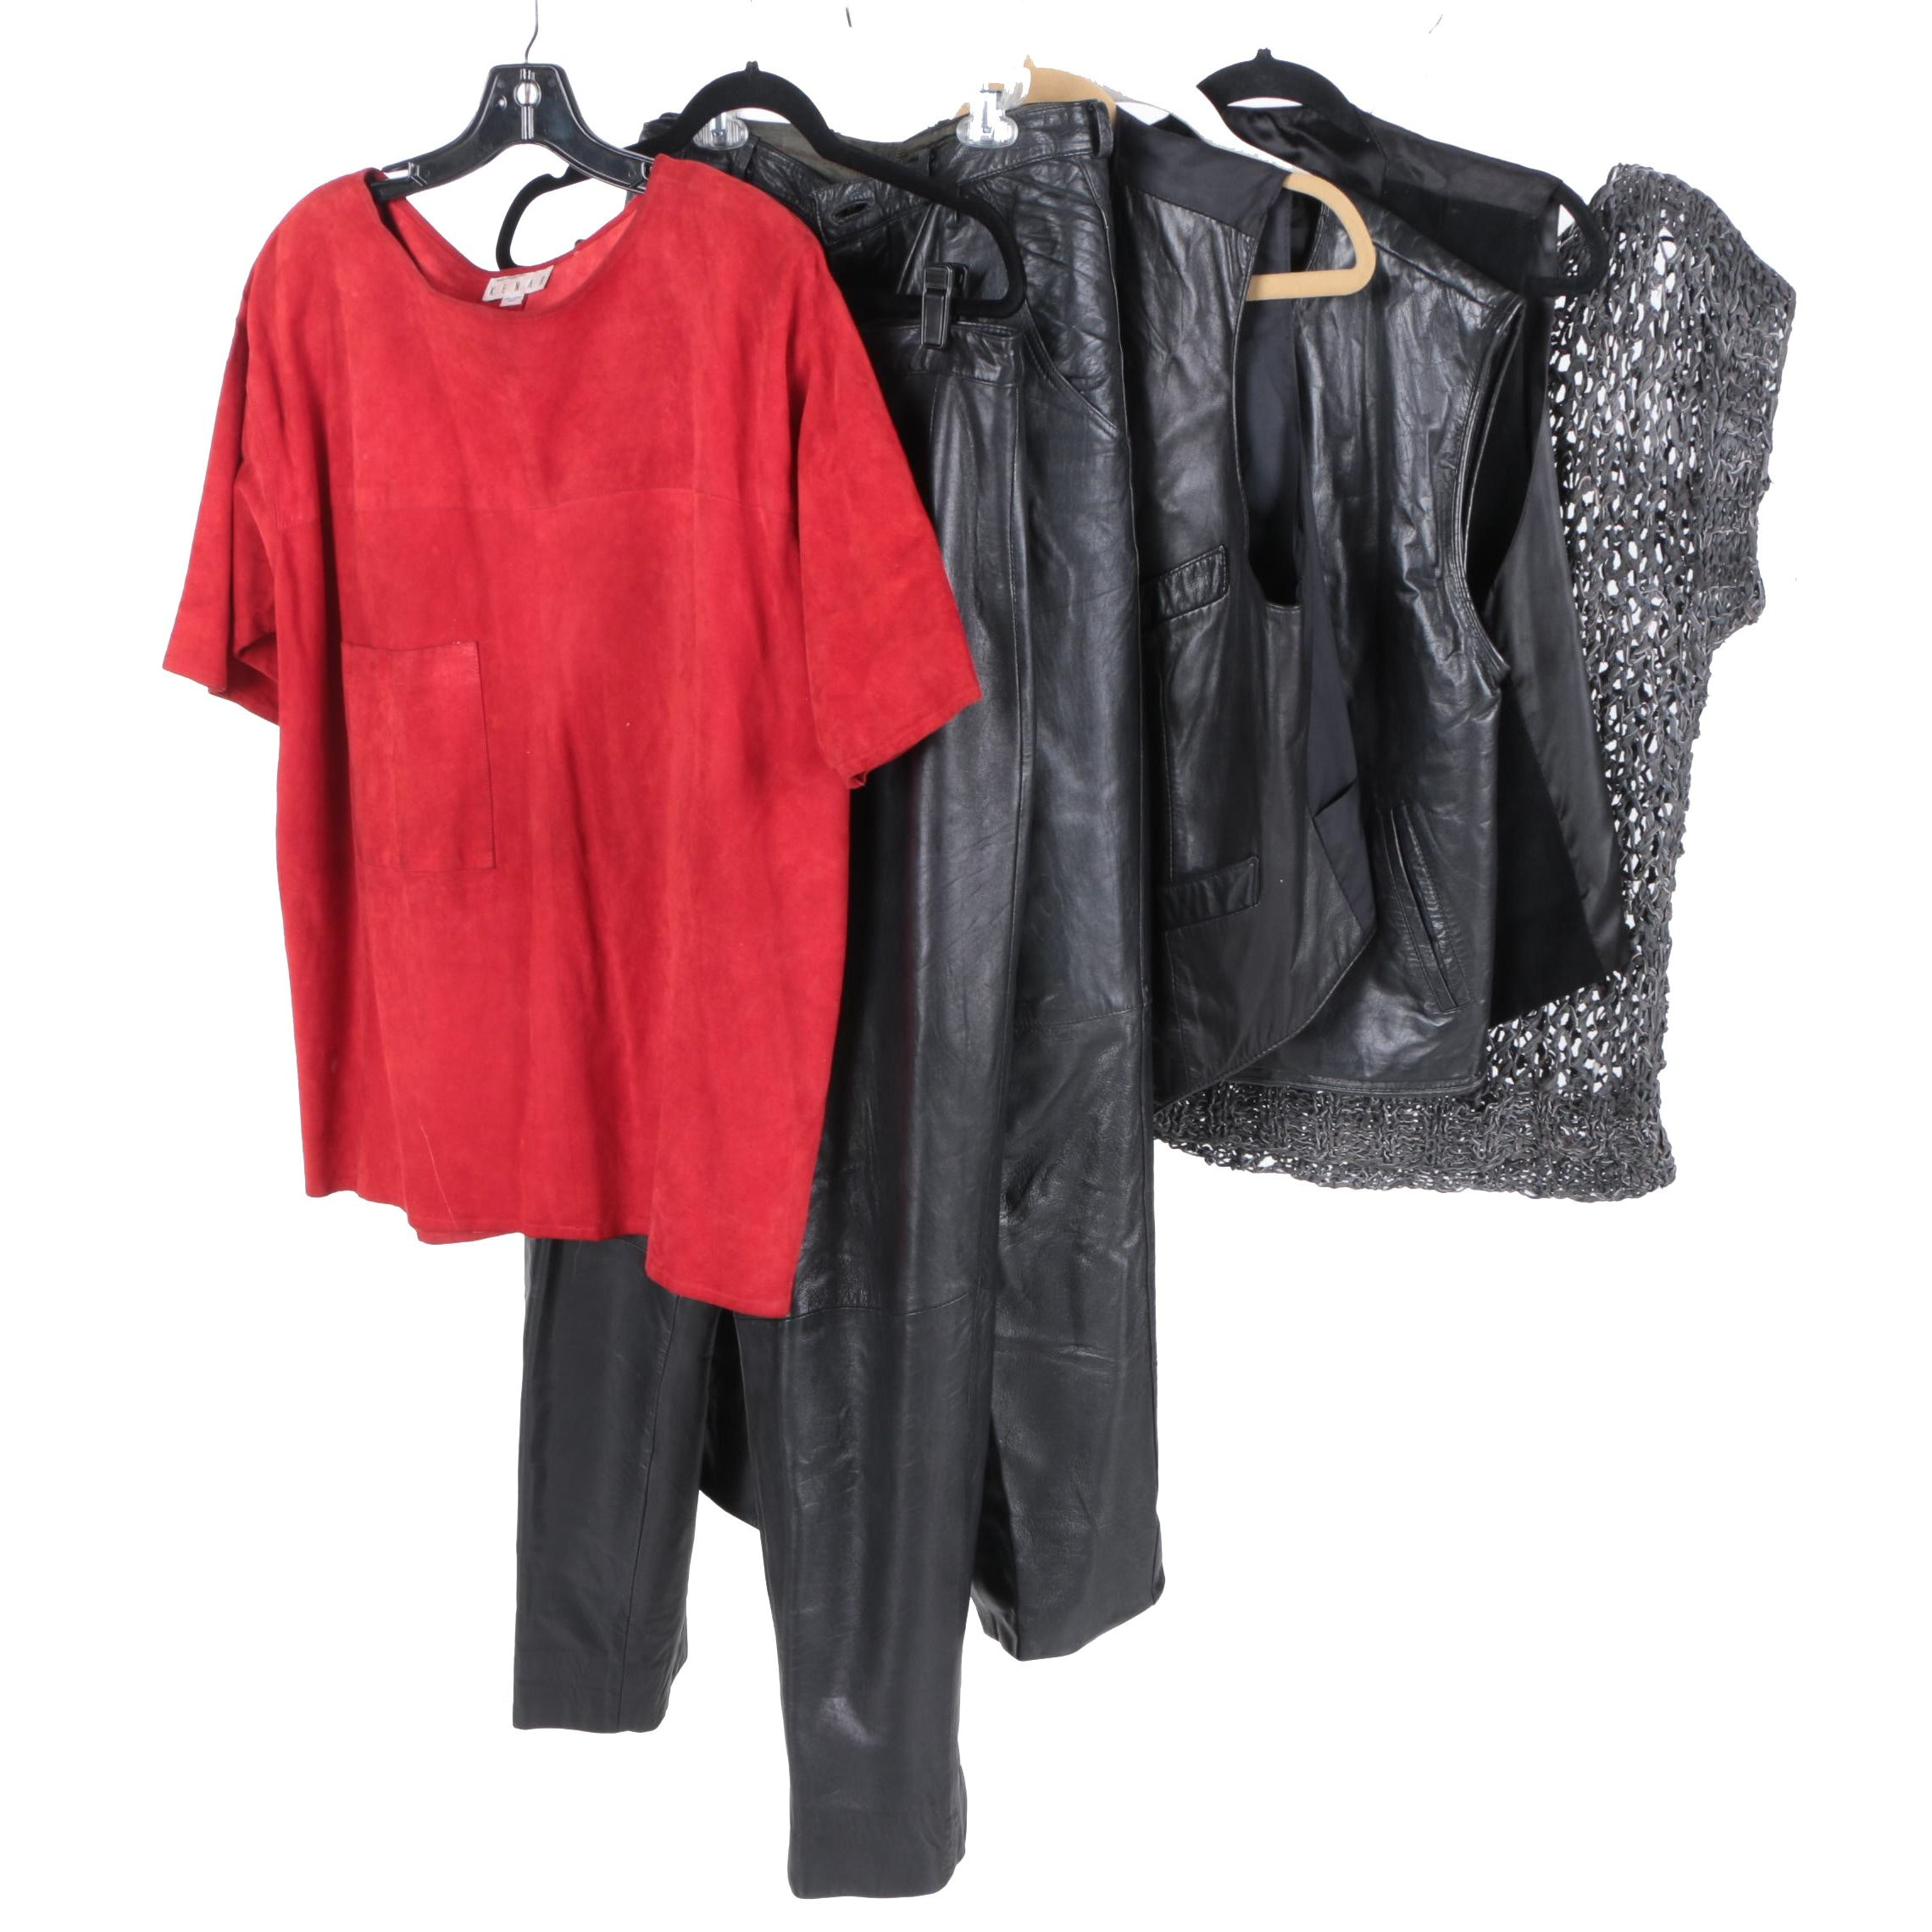 Women's Leather Clothing Assortment Including Lord & Taylor